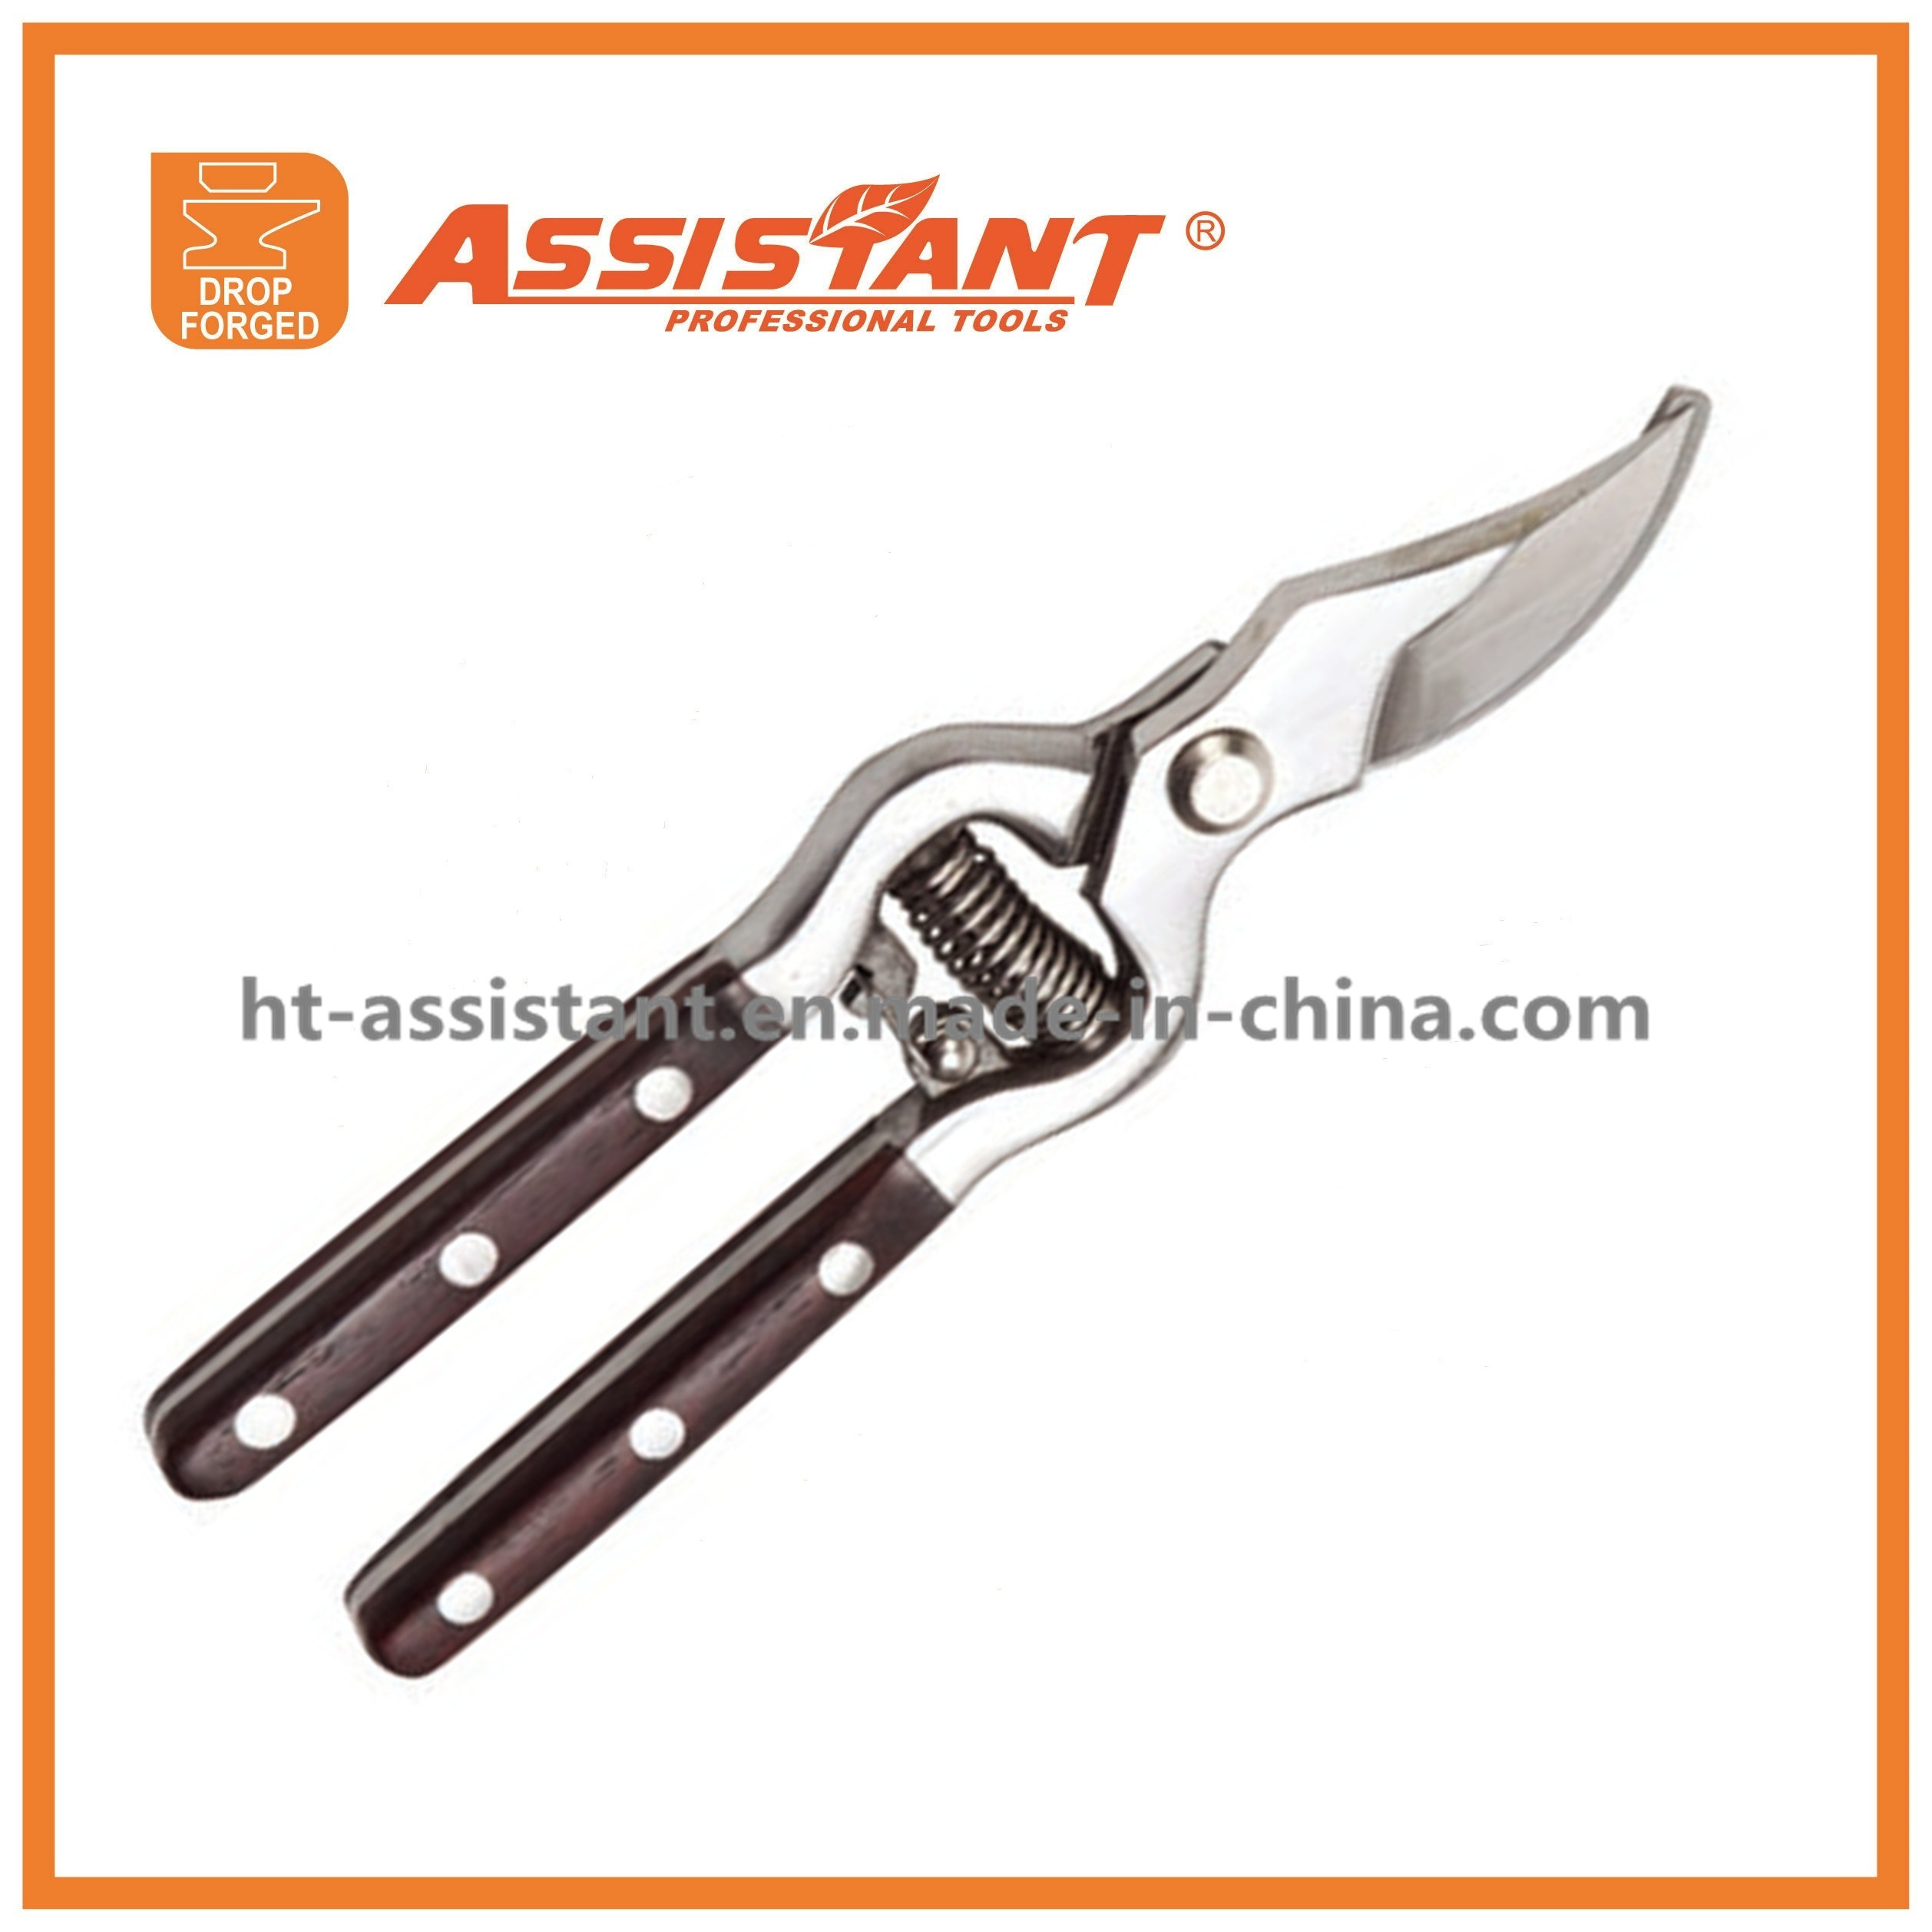 Tree Secateurs Floral Pruning Shear Grape Snips Garden Pruning Tools